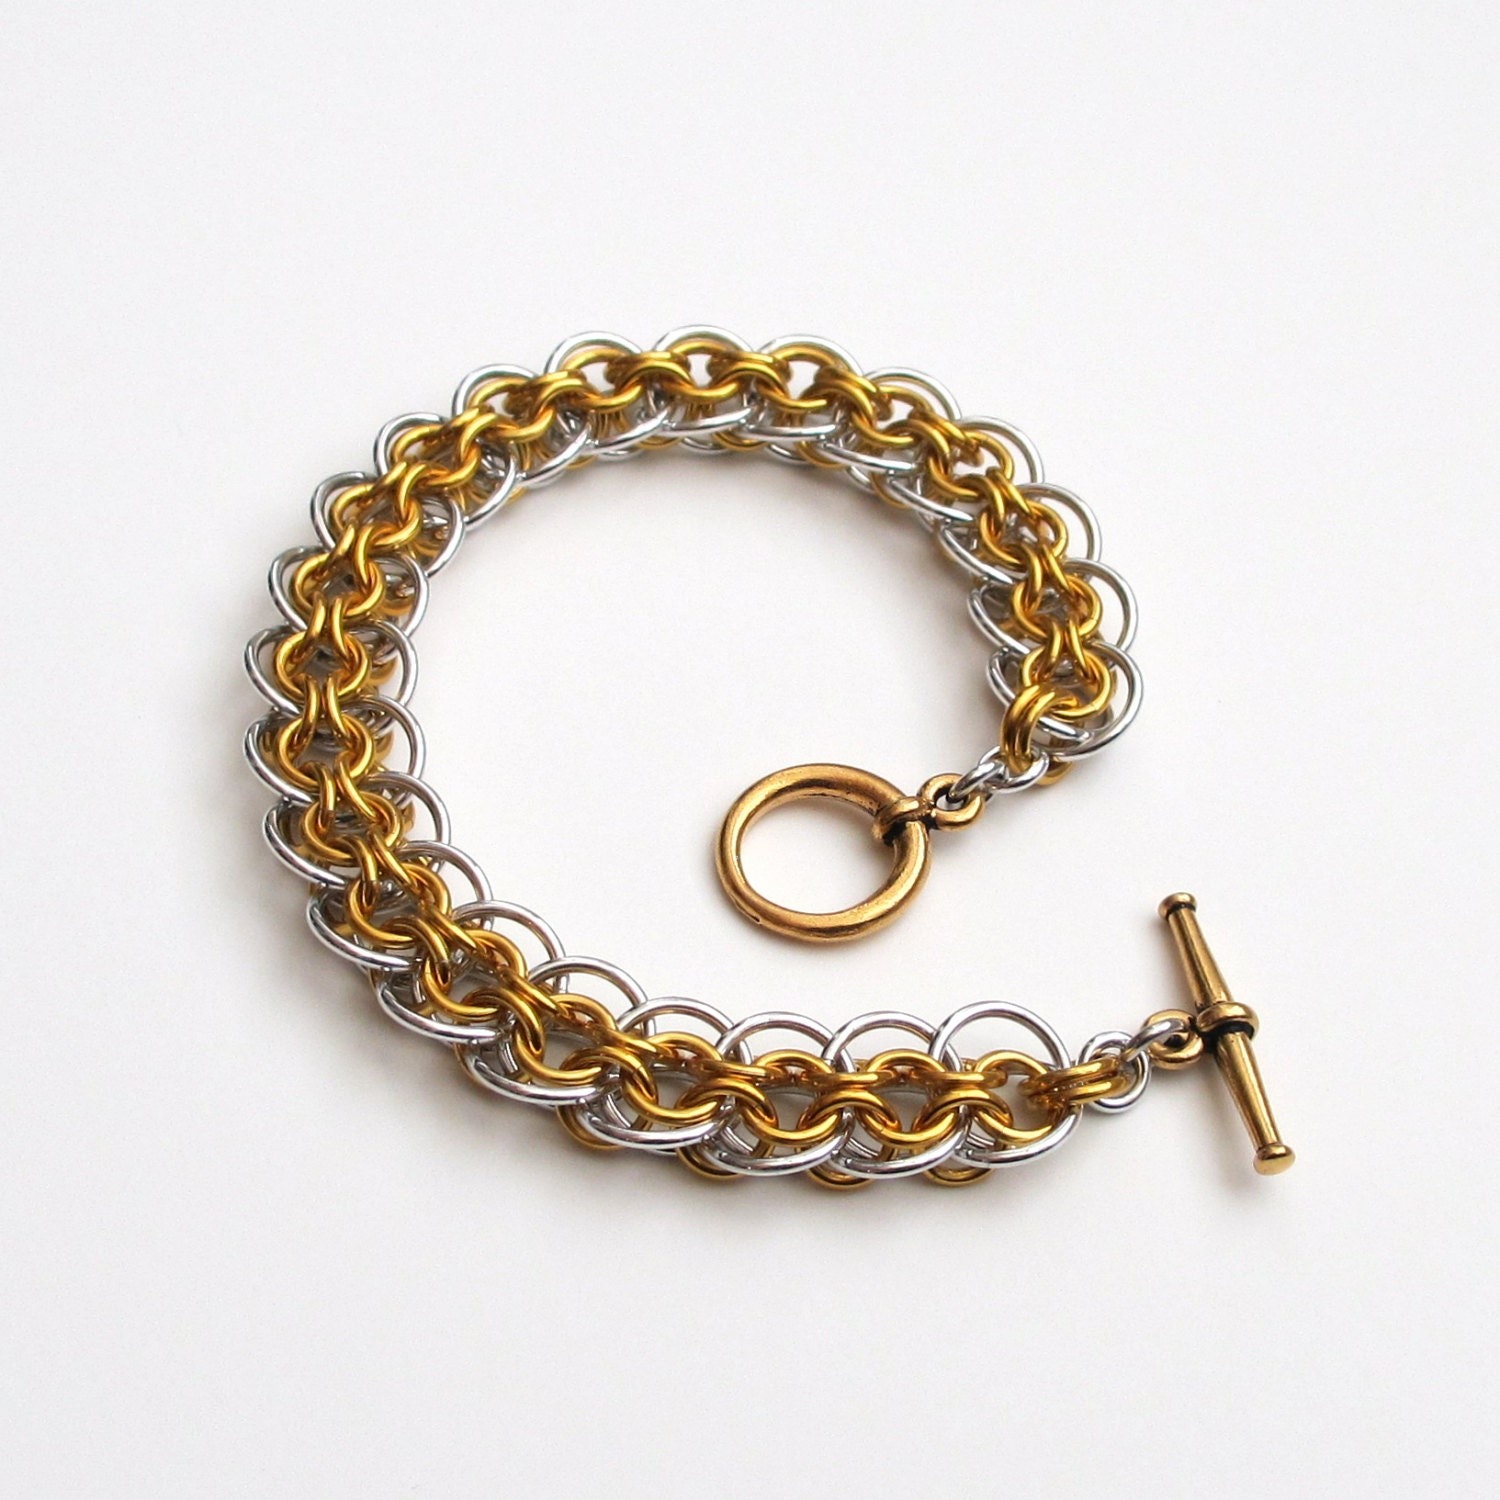 Make A Chain Mail Bracelet: Gold & Silver Bracelet Chainmail Cylon Weave